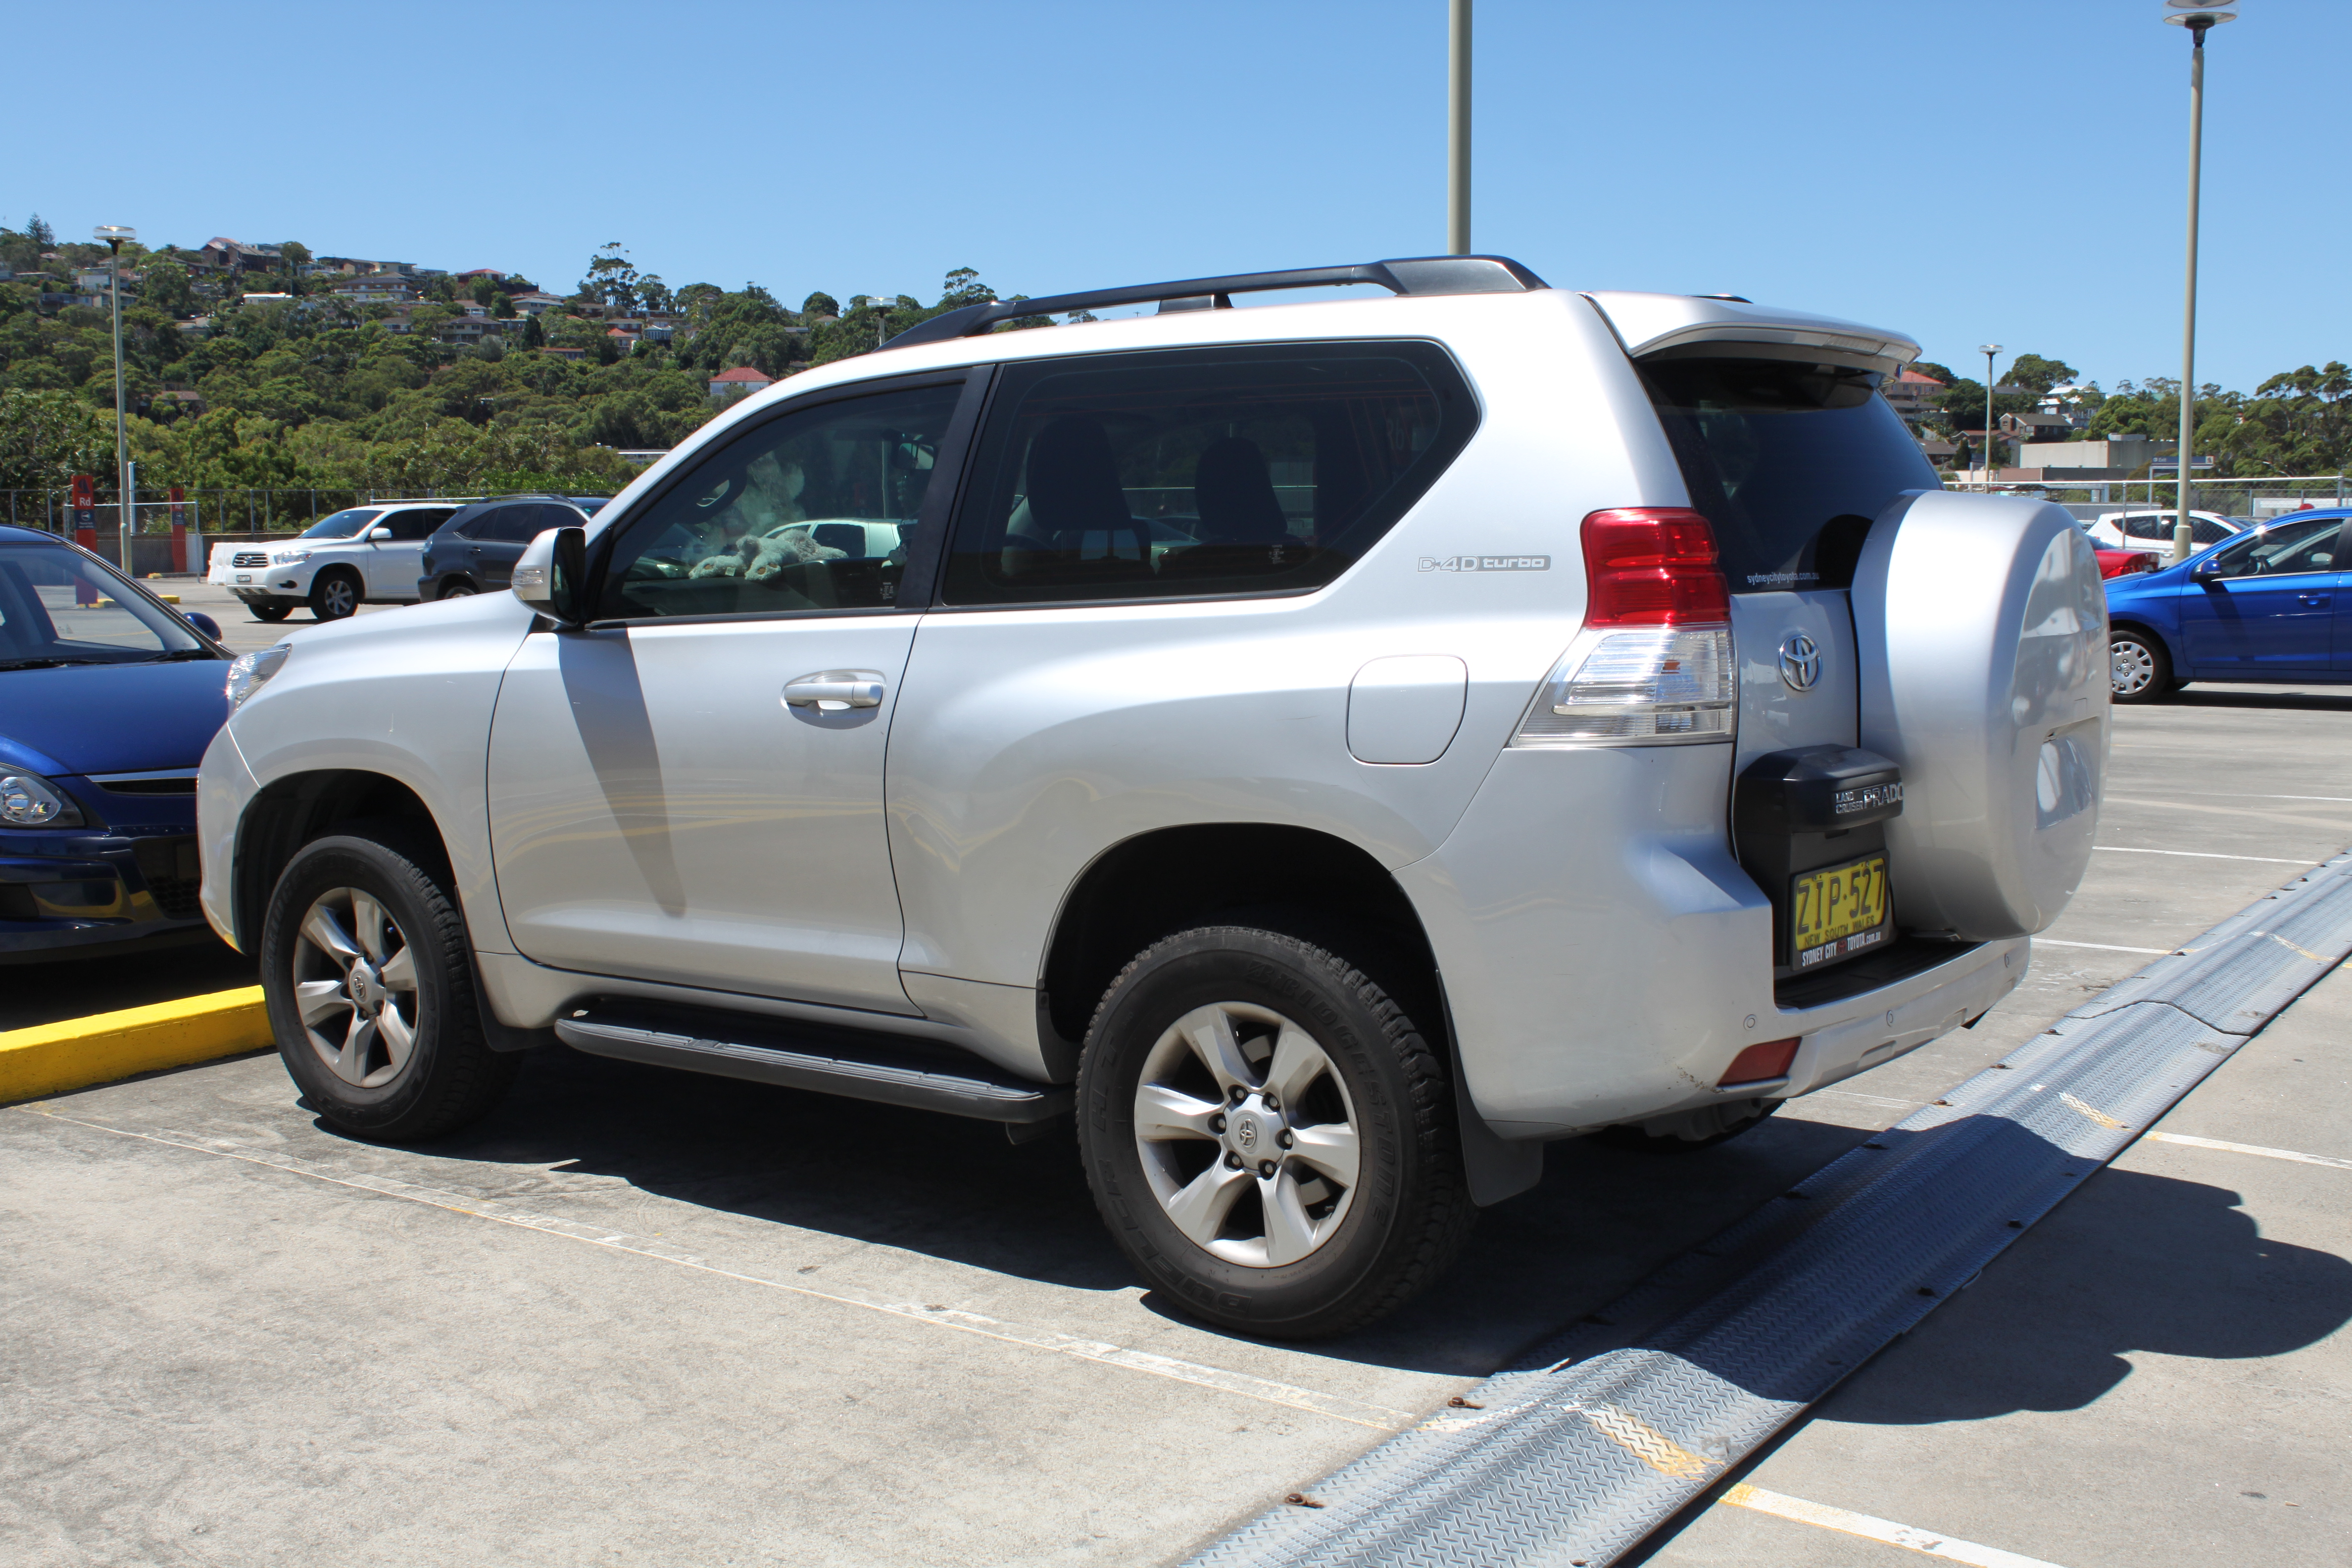 Toyota Land Cruiser Prado 150 3-door best photo